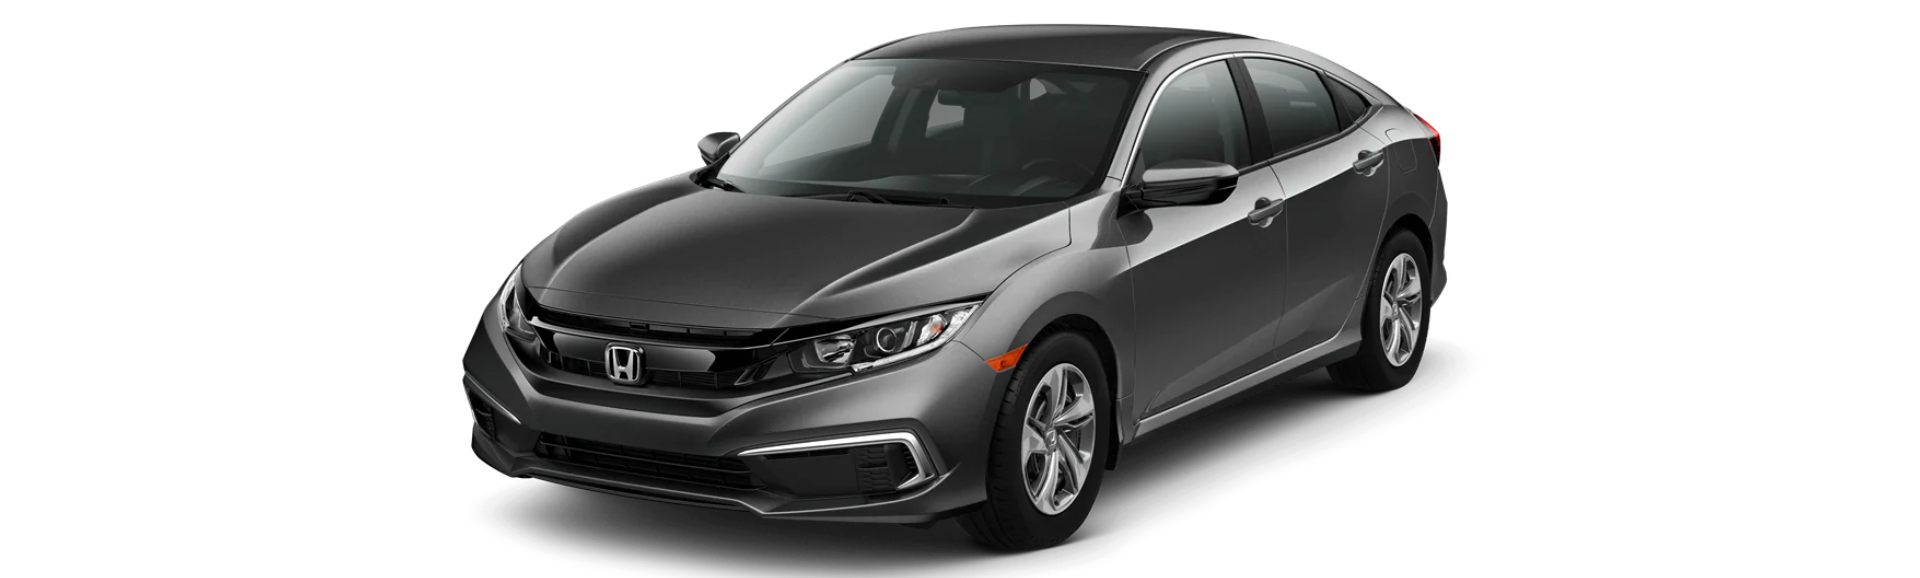 2020 Honda Civic Sedan LX header